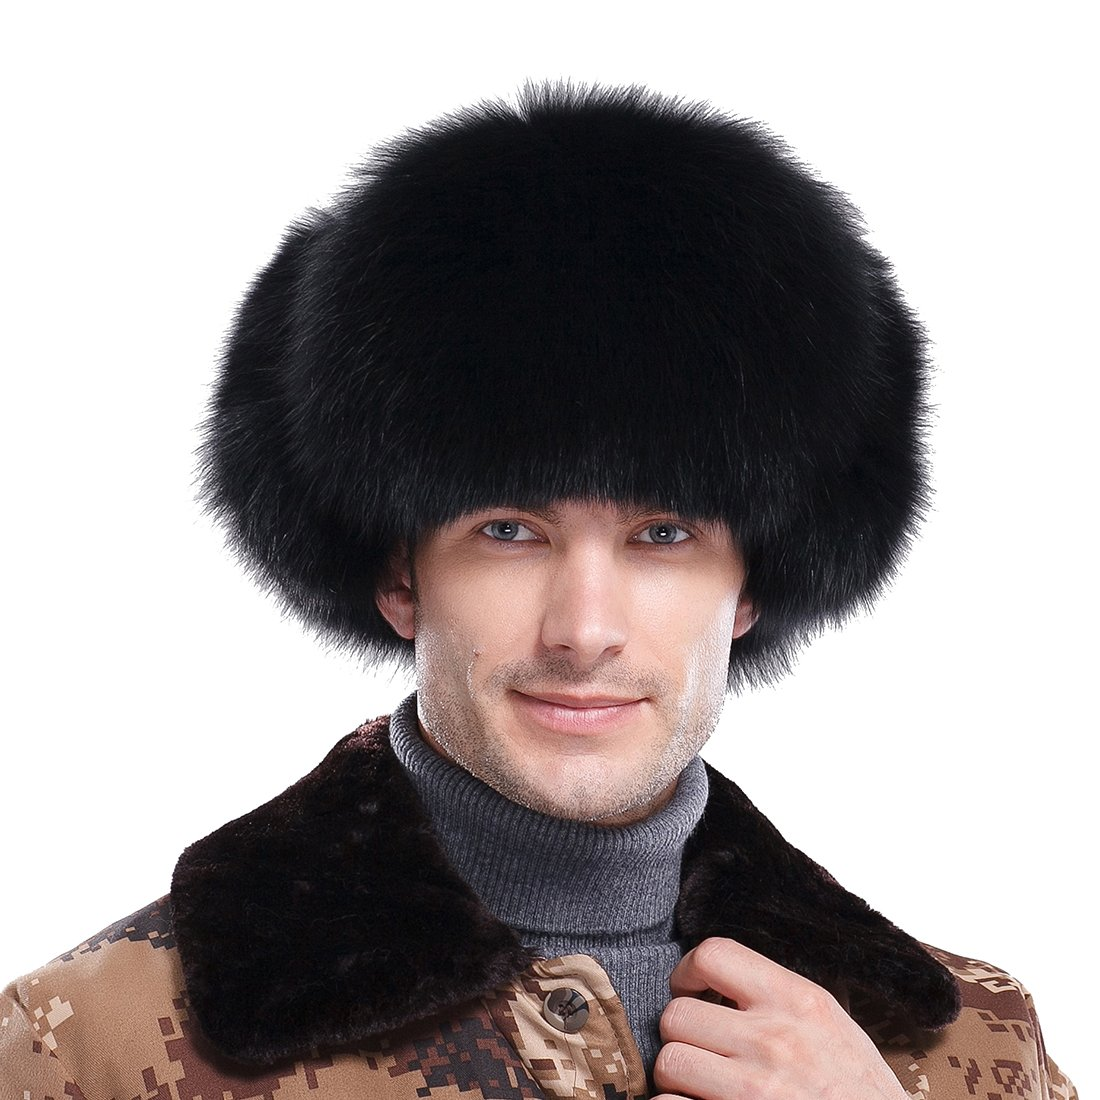 URSFUR Men's Black Fox Fur & Leather Trapper Hats Shijiazhuang Starway Imp&Exp Trading Co .Ltd. SD-F1357-1-1